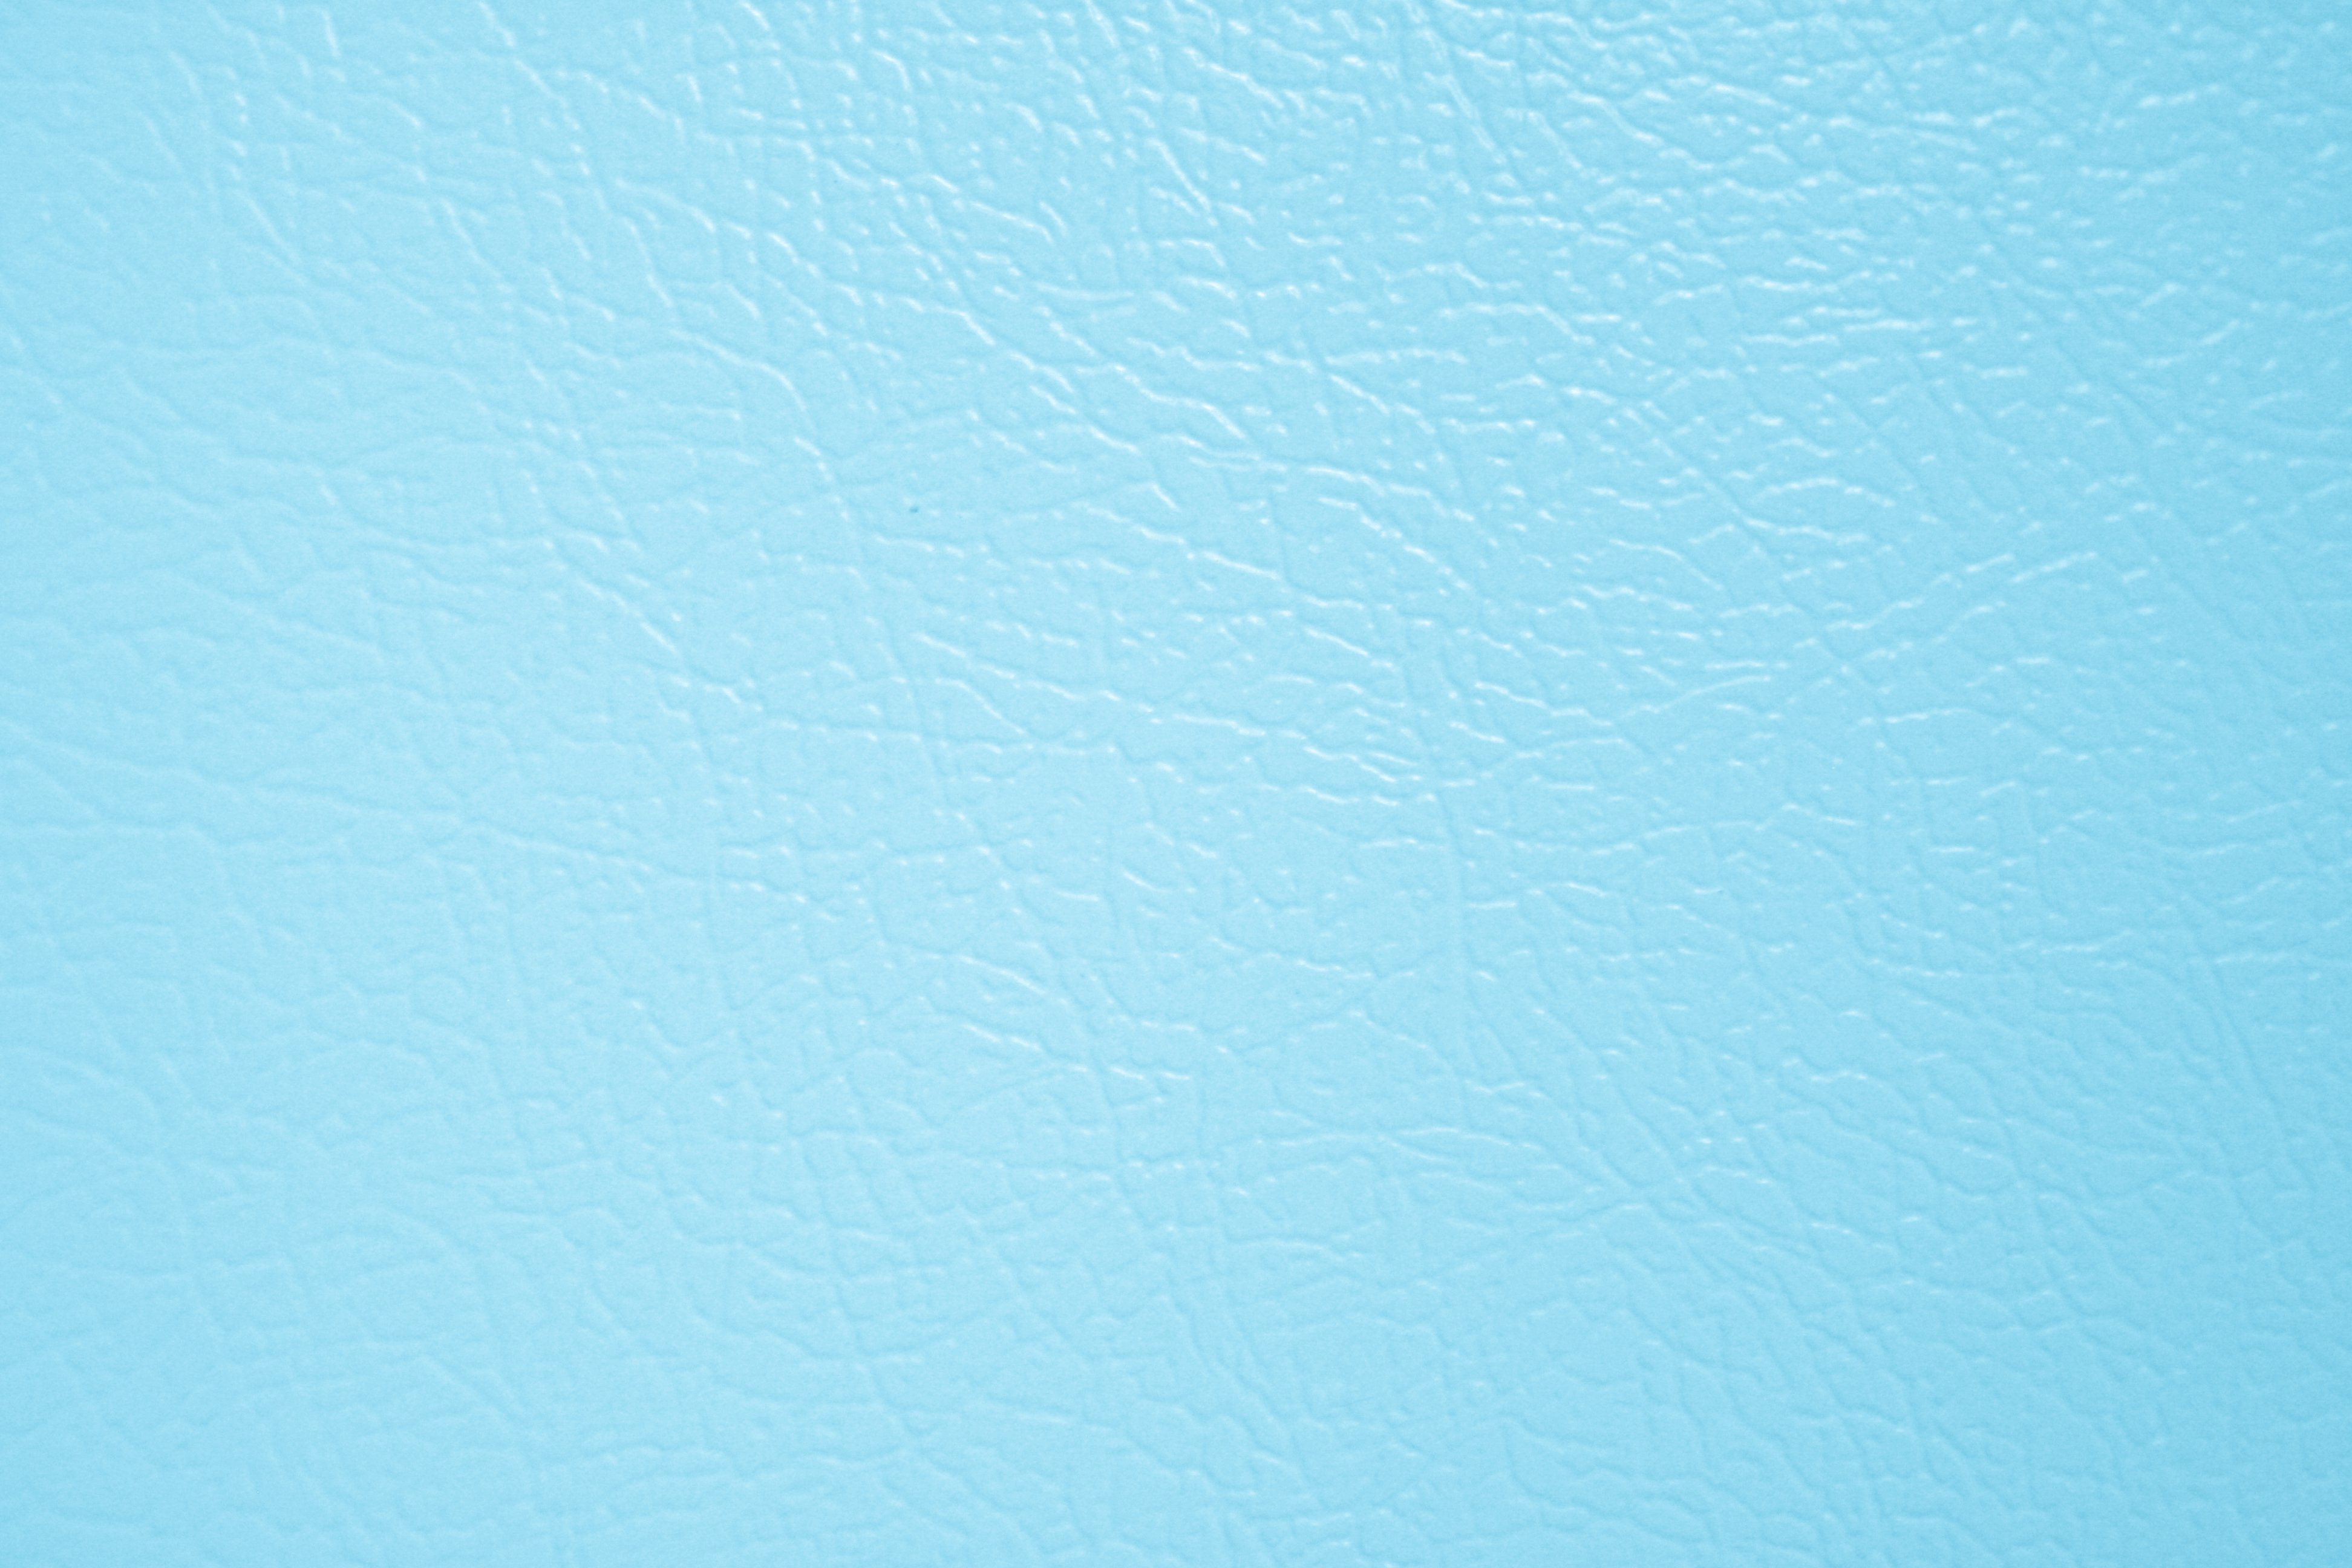 Baby Blue Faux Leather Texture Picture Free Photograph